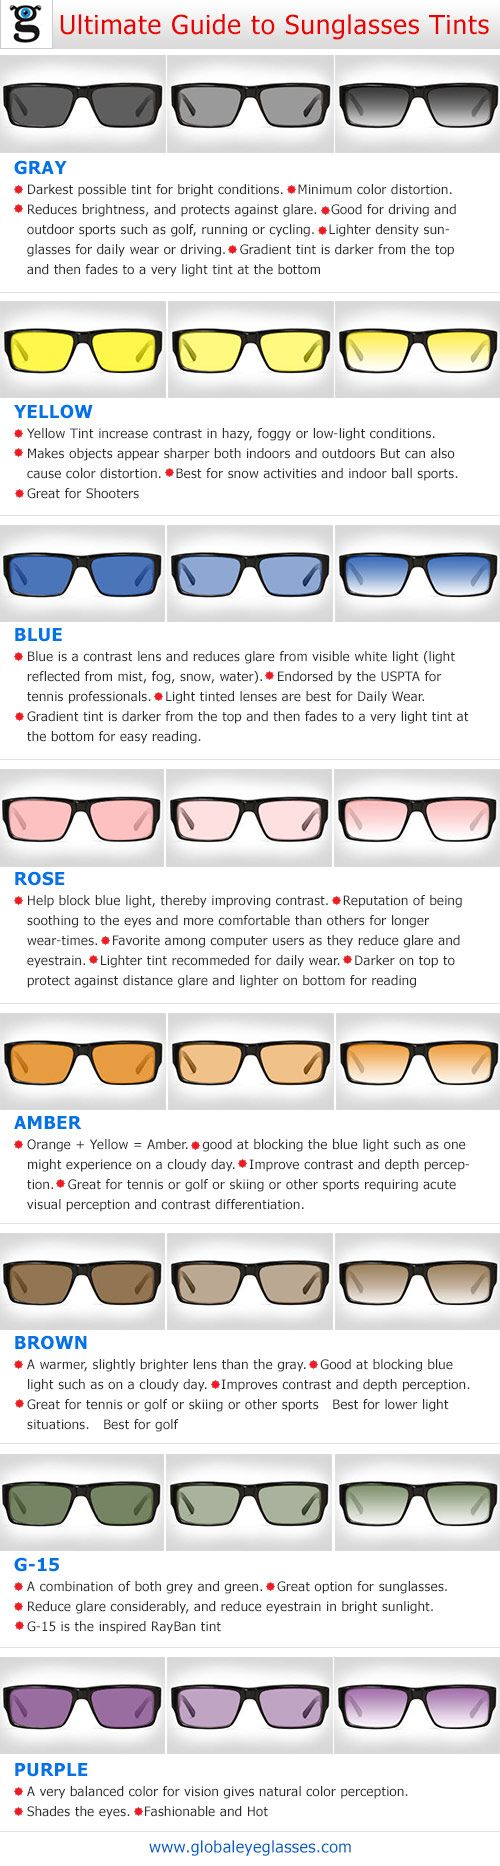 ad2bad9bdc Choosing the right sunglass tint. GlobalEyeglasses.com presents ultimate  guide to Sunglass Tints.